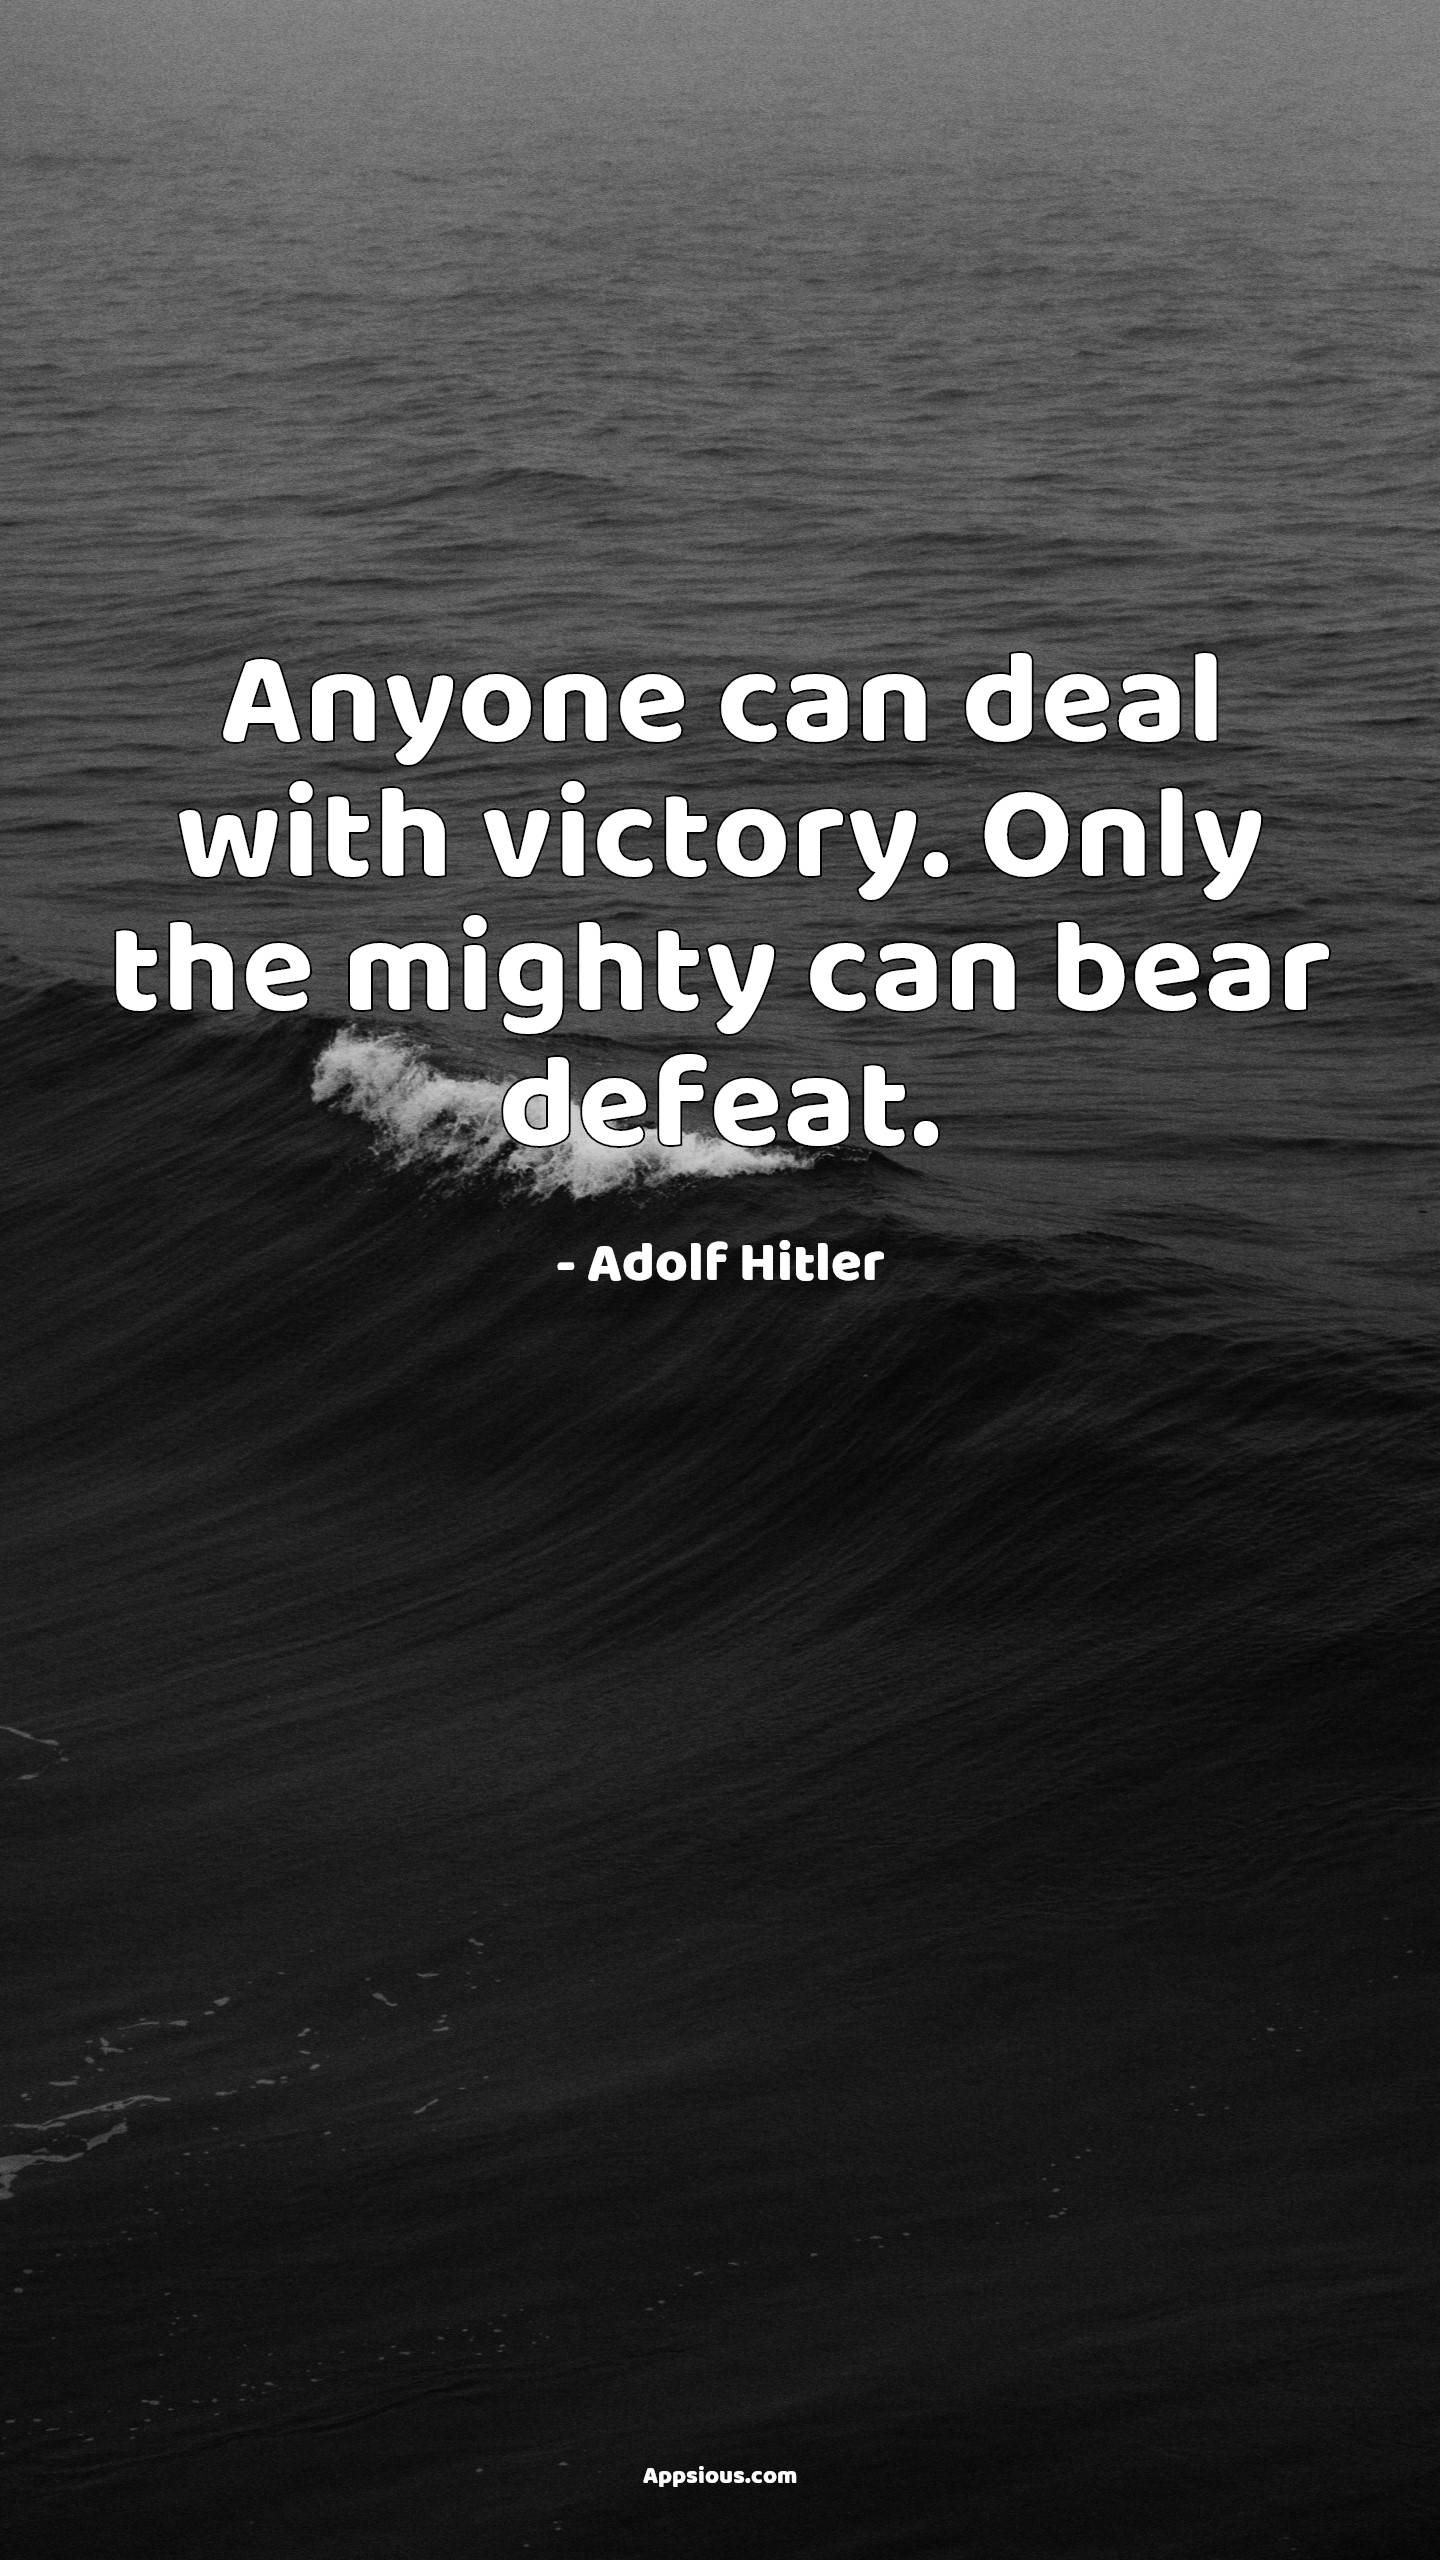 Anyone can deal with victory. Only the mighty can bear defeat.